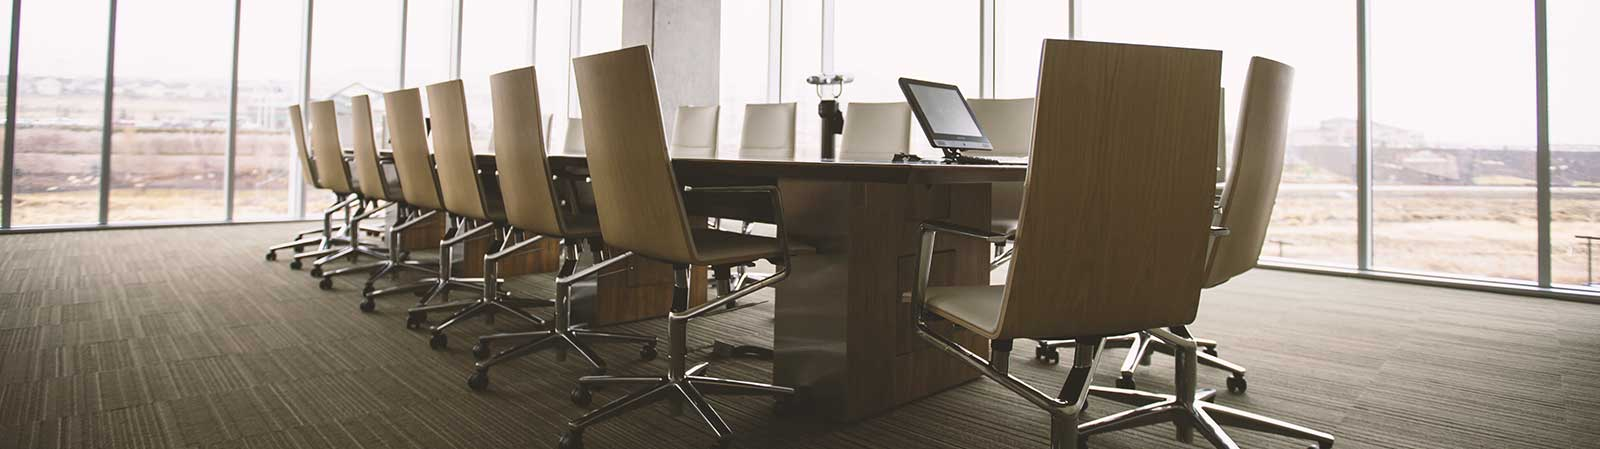 Hold Effective Condo Meetings: An Overview-4112